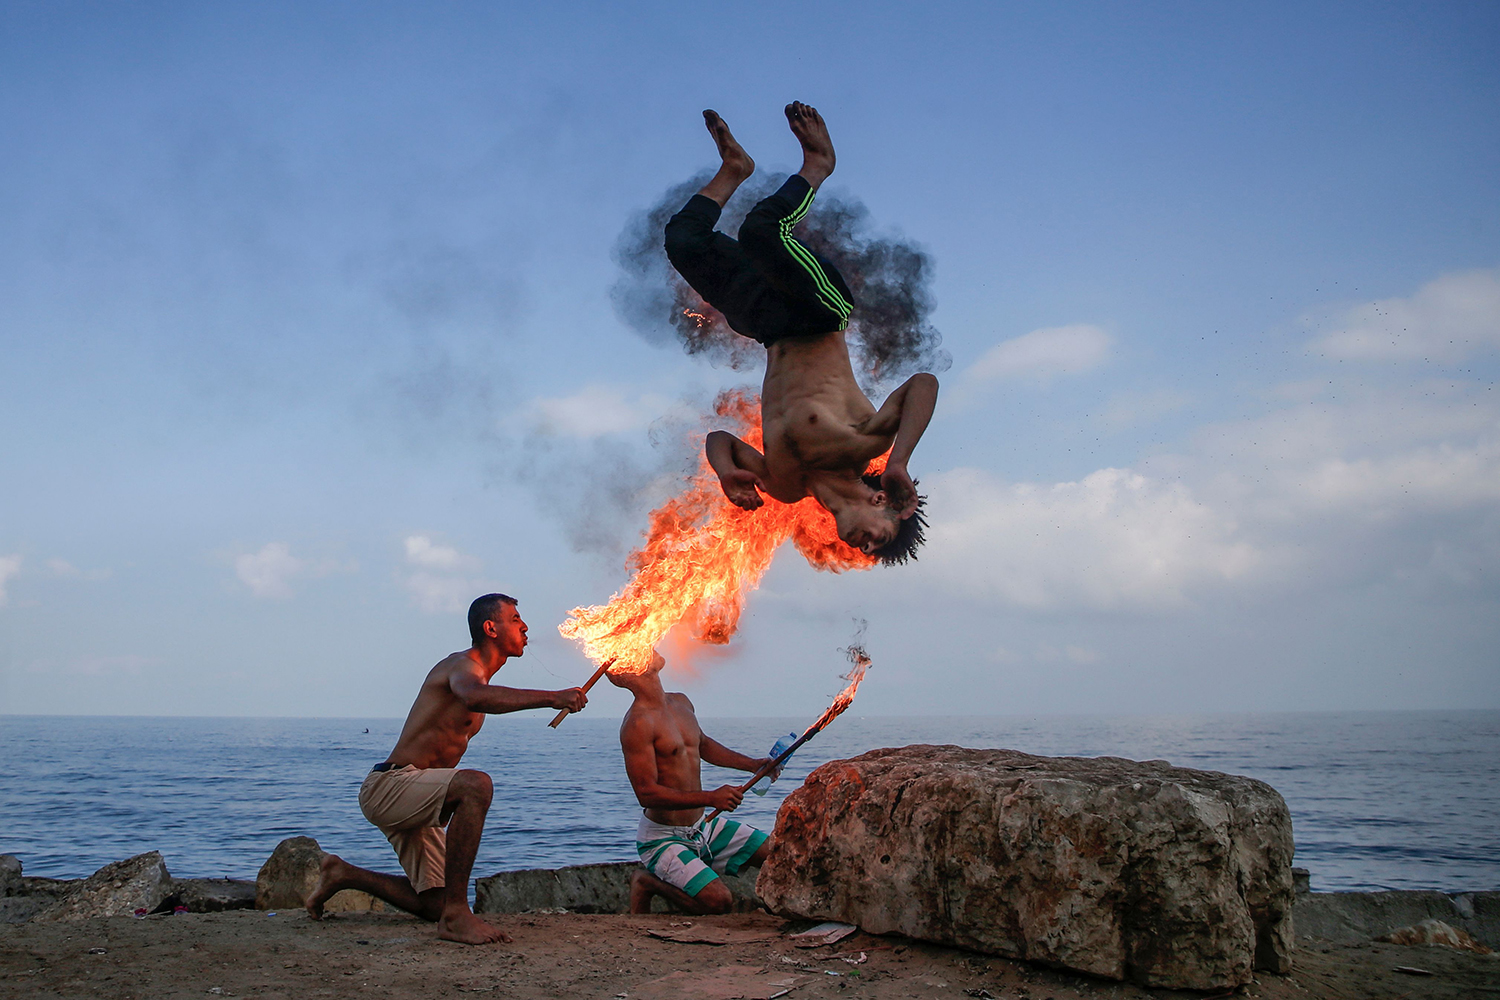 Palestinian men perform fire breathing on the beach as an entertainment for children during the summer vacation in Gaza City on Aug. 1. MOHAMMED ABED/AFP/Getty Images